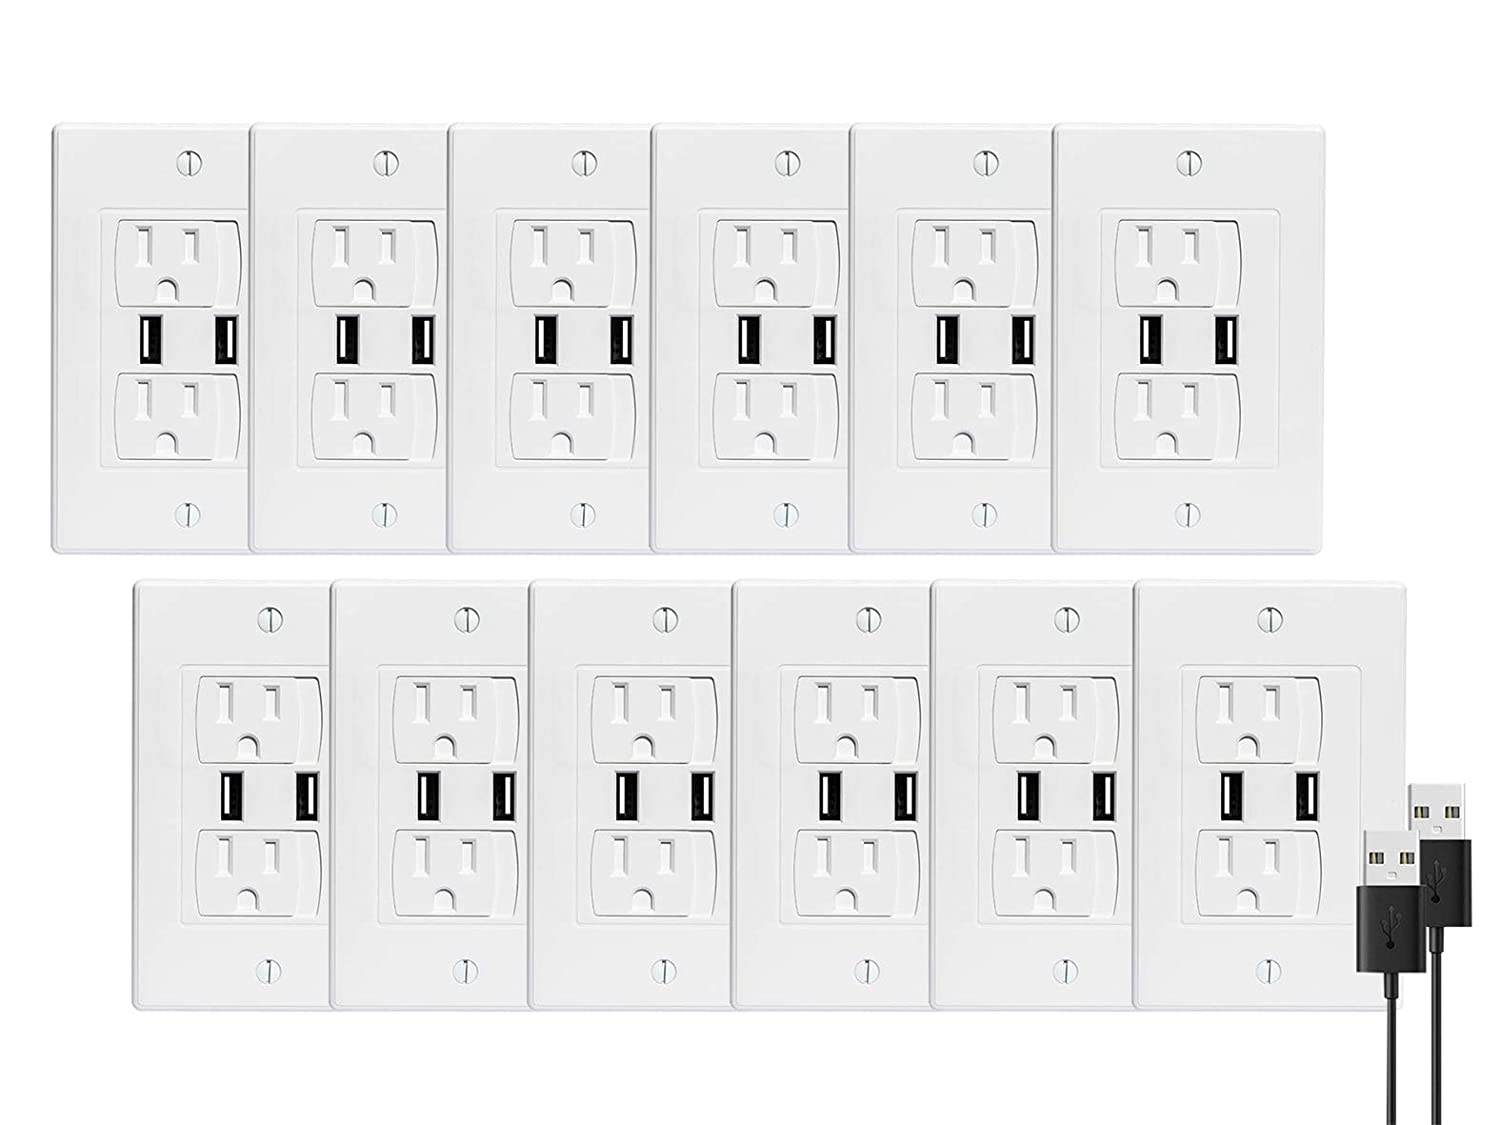 BUENAVO Universal Electrical Outlet Covers with USB Port, Baby Safety Self-Closing Wall Socket Plugs Plate Alternate for Child Proofing, BPA Free (12 Pack) T4g-Outlet-12USB